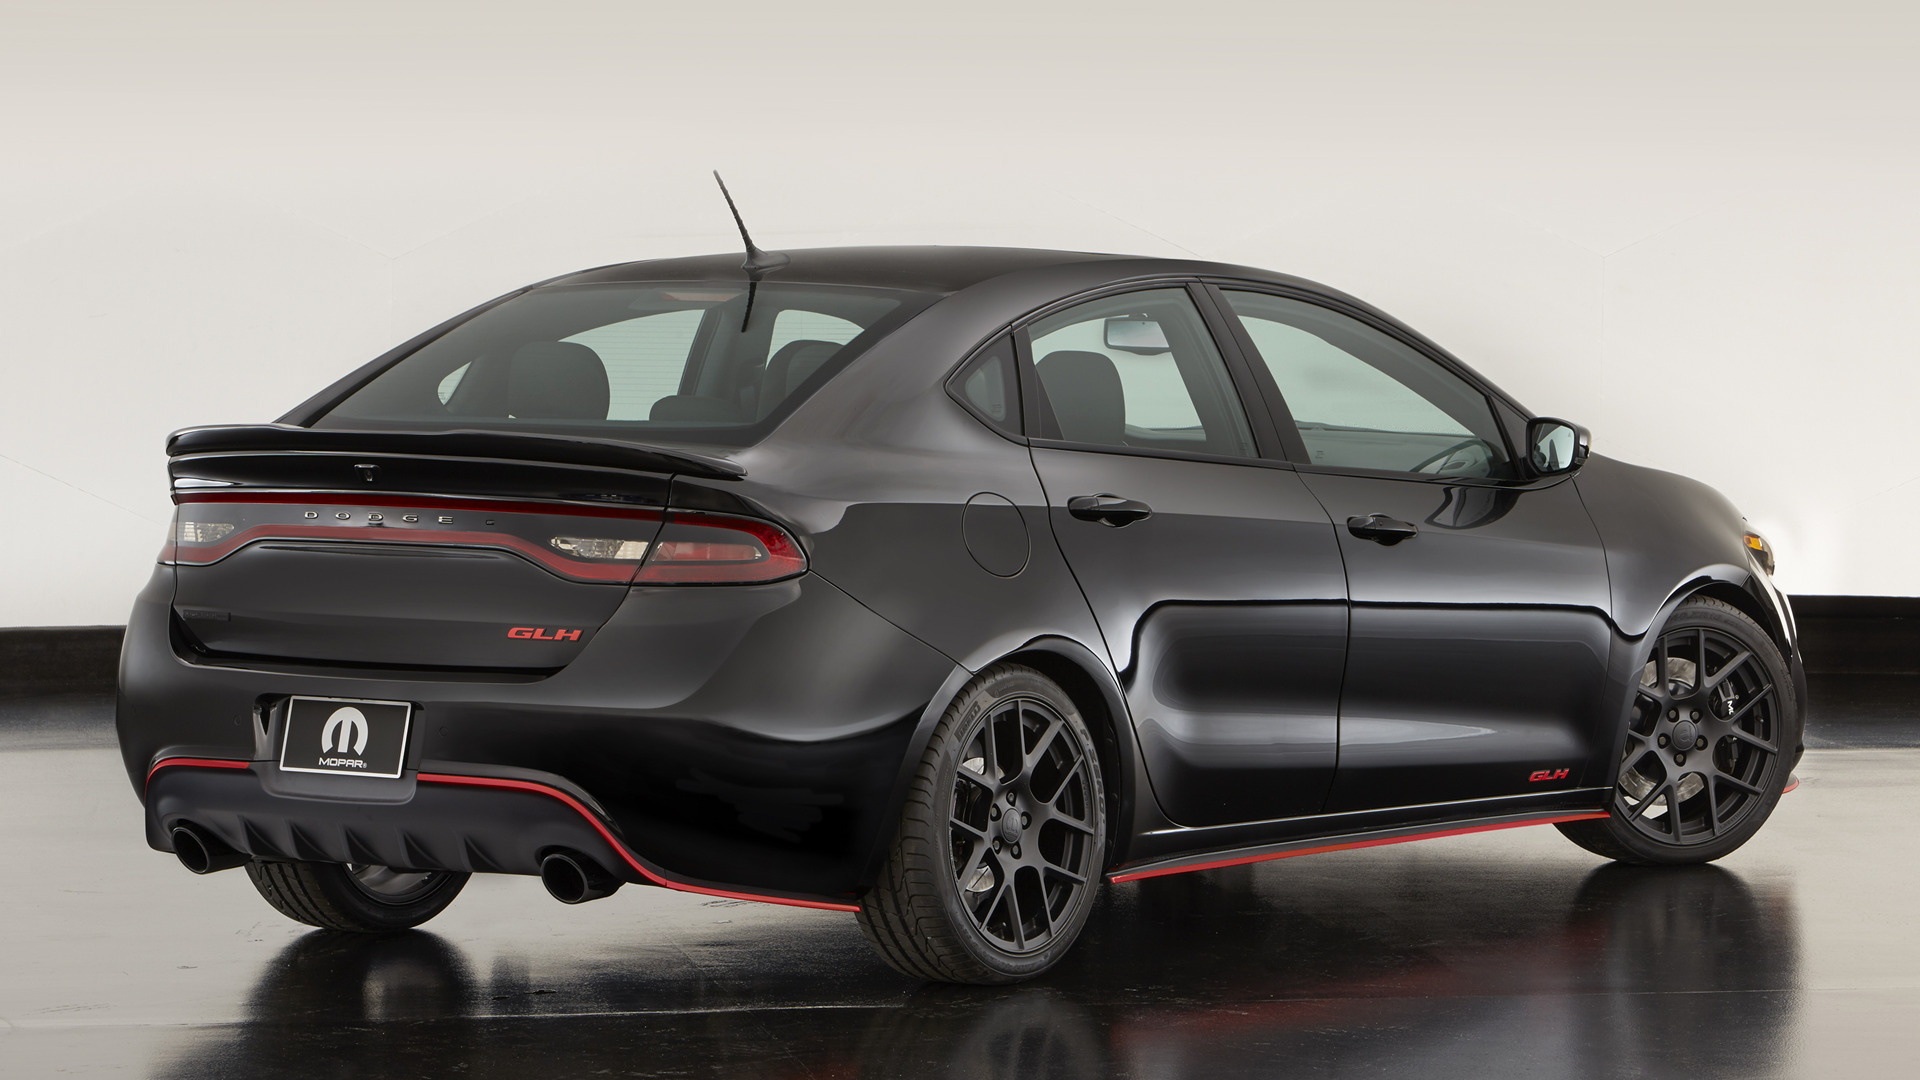 Dodge Dart GLH Concept (2015) Wallpapers and HD Images - Car Pixel